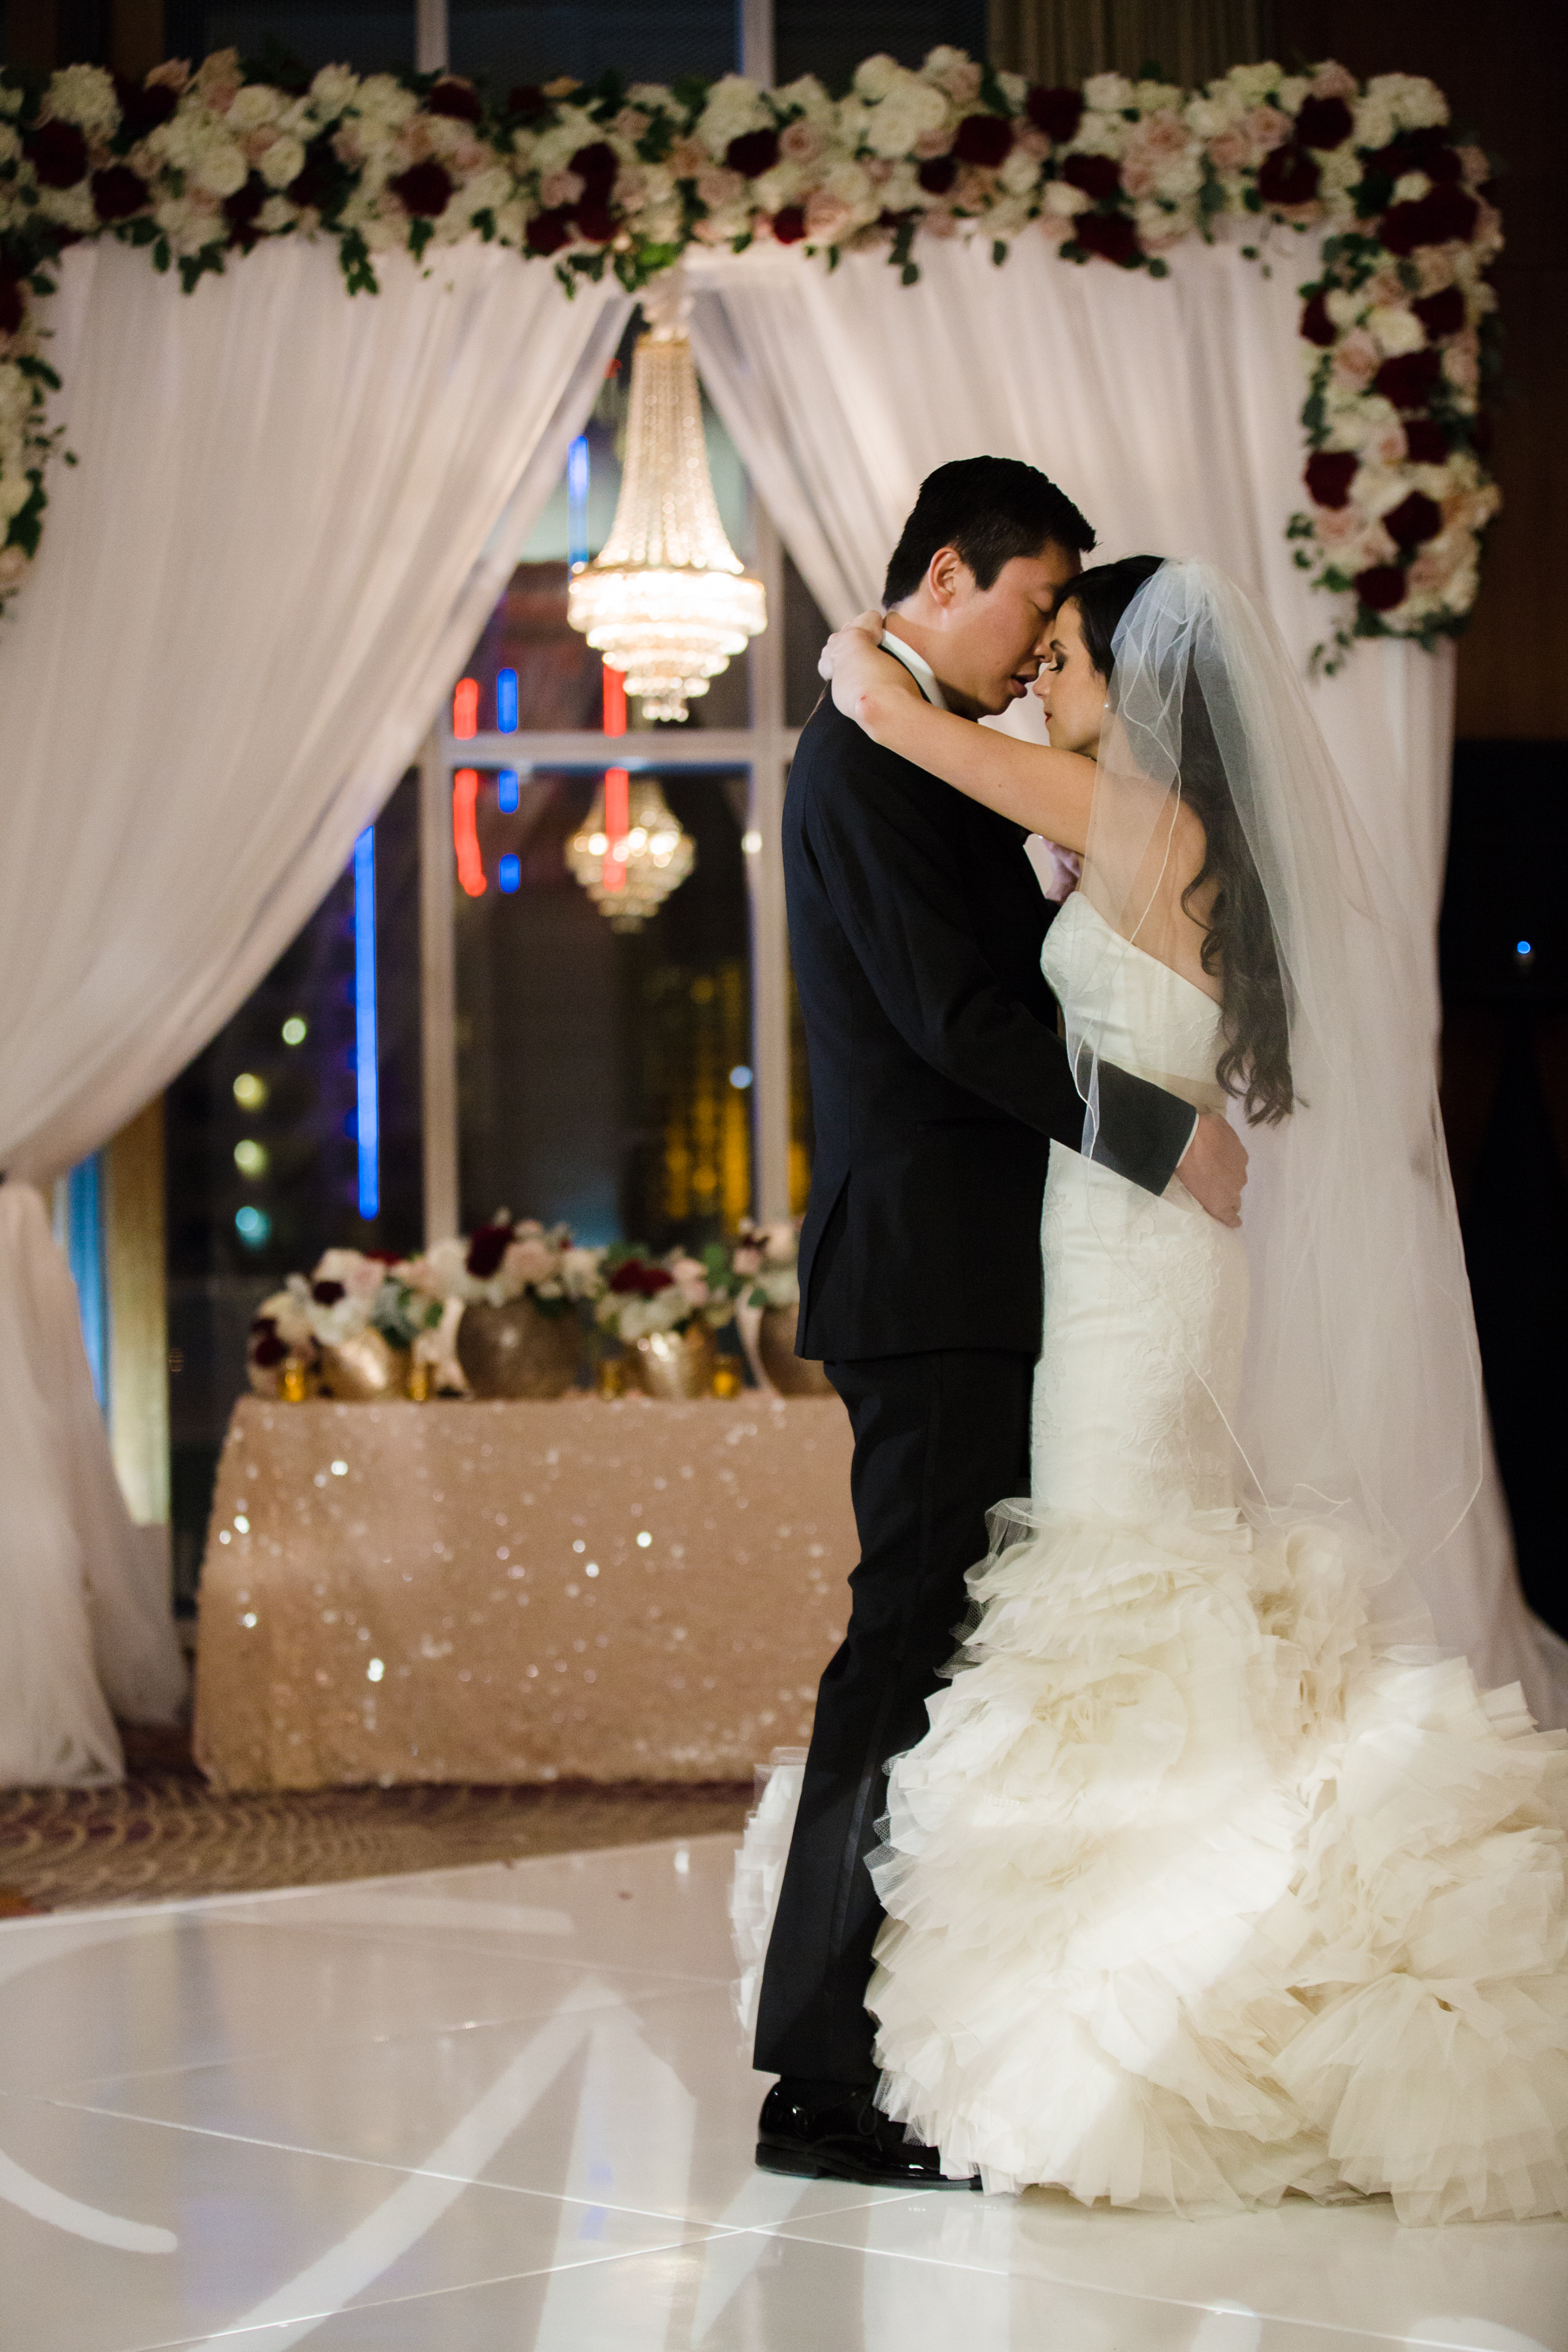 Bride and groom first dance all alone.Luxury wedding at the Mandarin Oriental with a color scheme of white, blush, and pops of wine red produced by Las Vegas Wedding Planner Andrea Eppolito with photos by Stephen Salazar Photography.